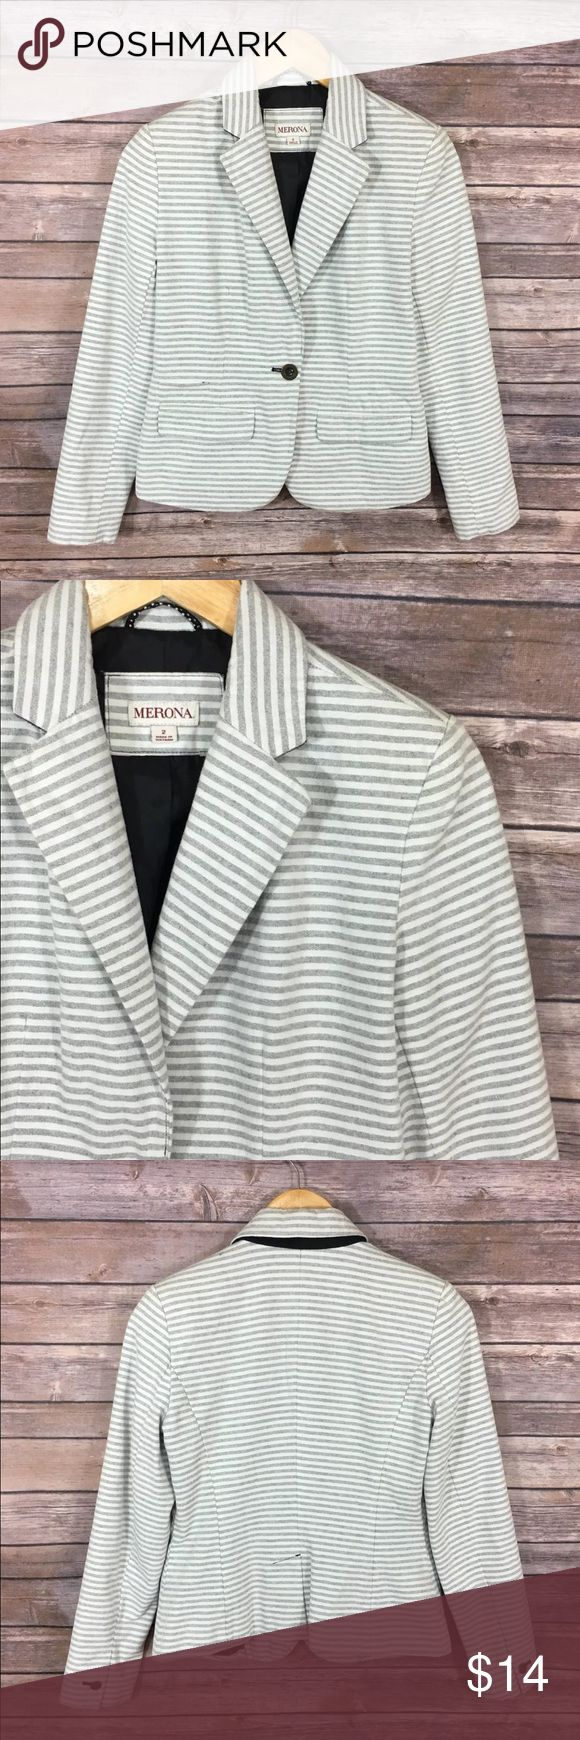 """Merona Striped Tailored Long Sleeve Blazer Length- 24"""" Shoulders- 30"""" Chest- 36"""" Sleeves- 23' Waist- 32""""  Did you know? - Front single button closure, decorative double front pockets, single button cuff closure, lightly padded shoulders, lined - Pre- loved - Great used condition - Lightweight, no stretch - 100% cotton - Machine wash cold, line dry - Measurements taken flat Merona Jackets & Coats Blazers"""